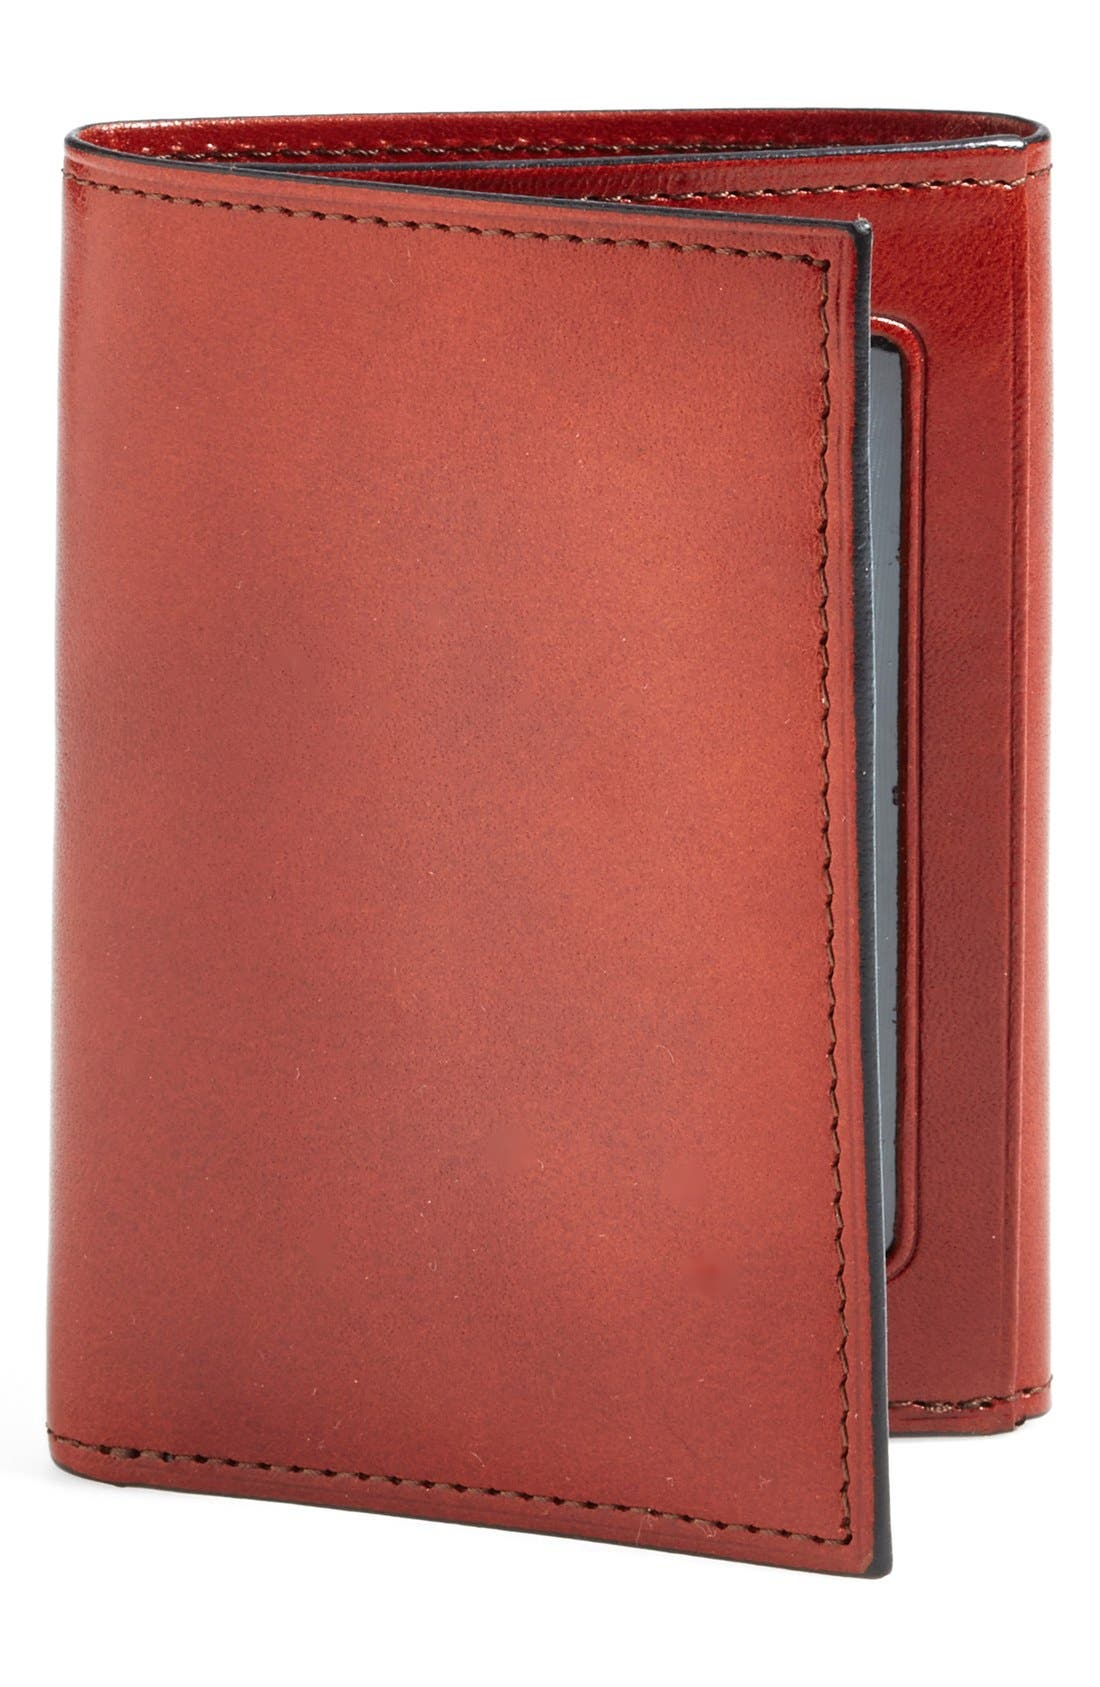 'Old Leather' Trifold Wallet,                         Main,                         color, Cognac